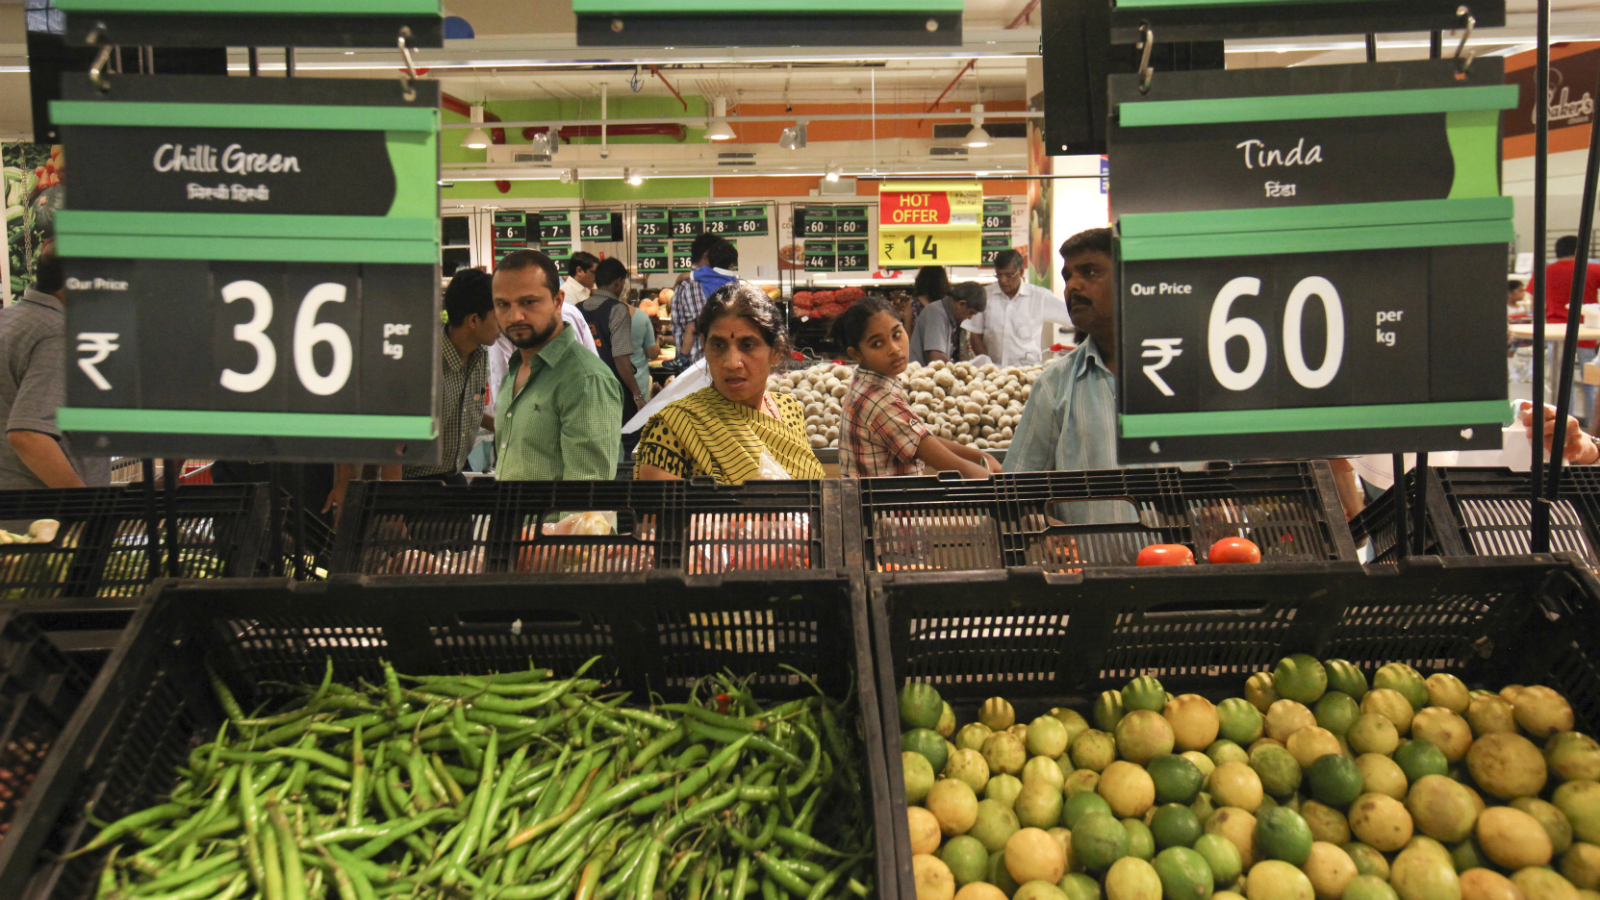 Prices for various vegetables are displayed as people shop in the fresh foods section of a Reliance Fresh supermarket in Mumbai October 16, 2011. Five years after making a grand foray into retail, Mukesh Ambani's Reliance Industries is nowhere close to the scale he had hoped his company, India's largest listed group, would achieve in a fragmented and fast-growing industry. With retail giants Wal-Mart Stores Inc and Carrefour circling India in anticipation of a rule change that would allow foreign investment in supermarkets, Asia's richest man is scrambling to capitalise on his early mover advantage.